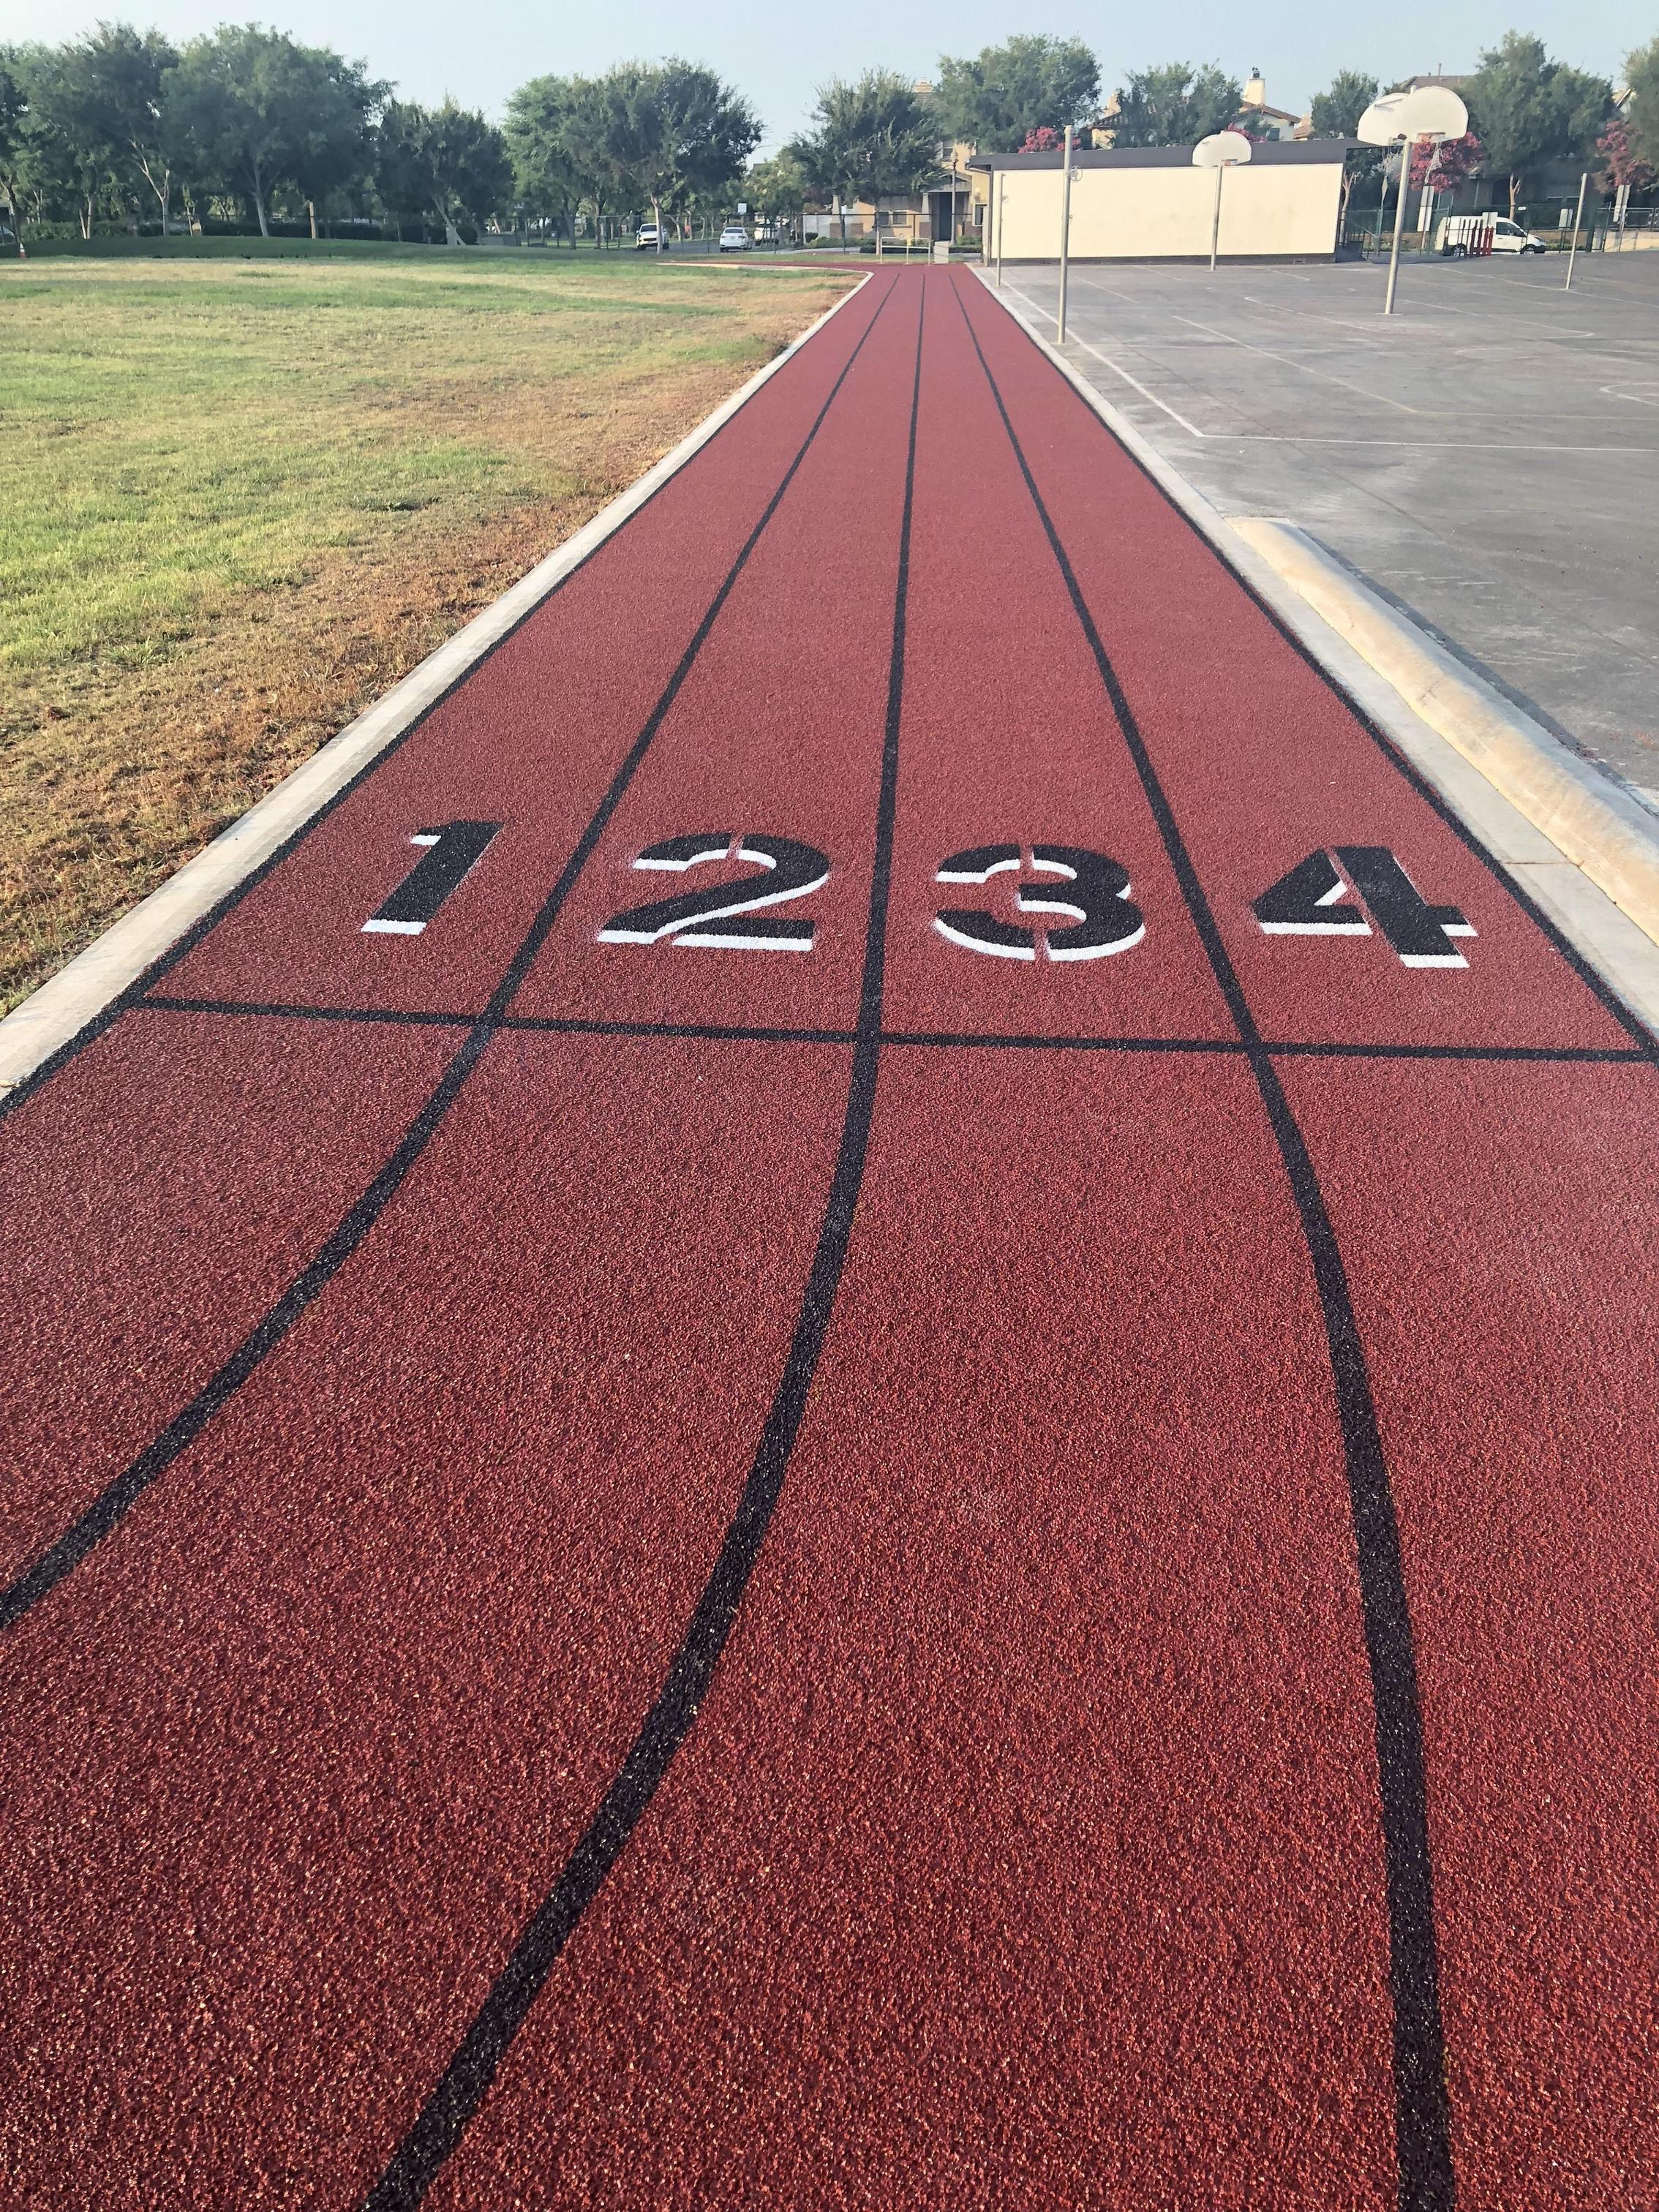 A new track surface is in at Fisler.